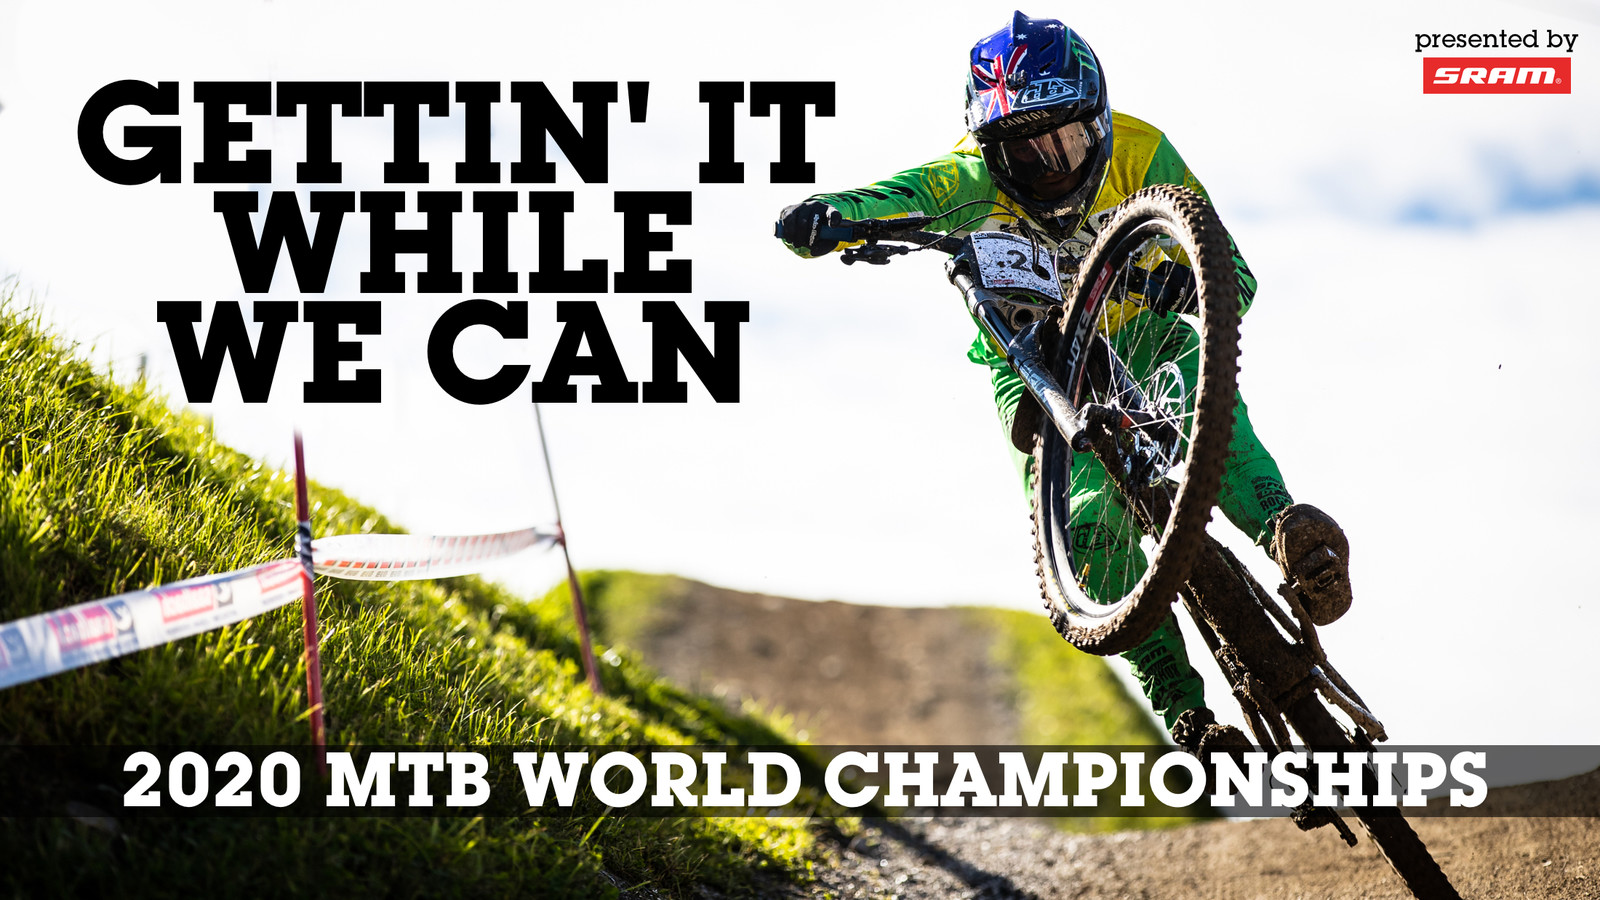 GETTIN' IT WHILE WE CAN - 2020 World Championships DH Action